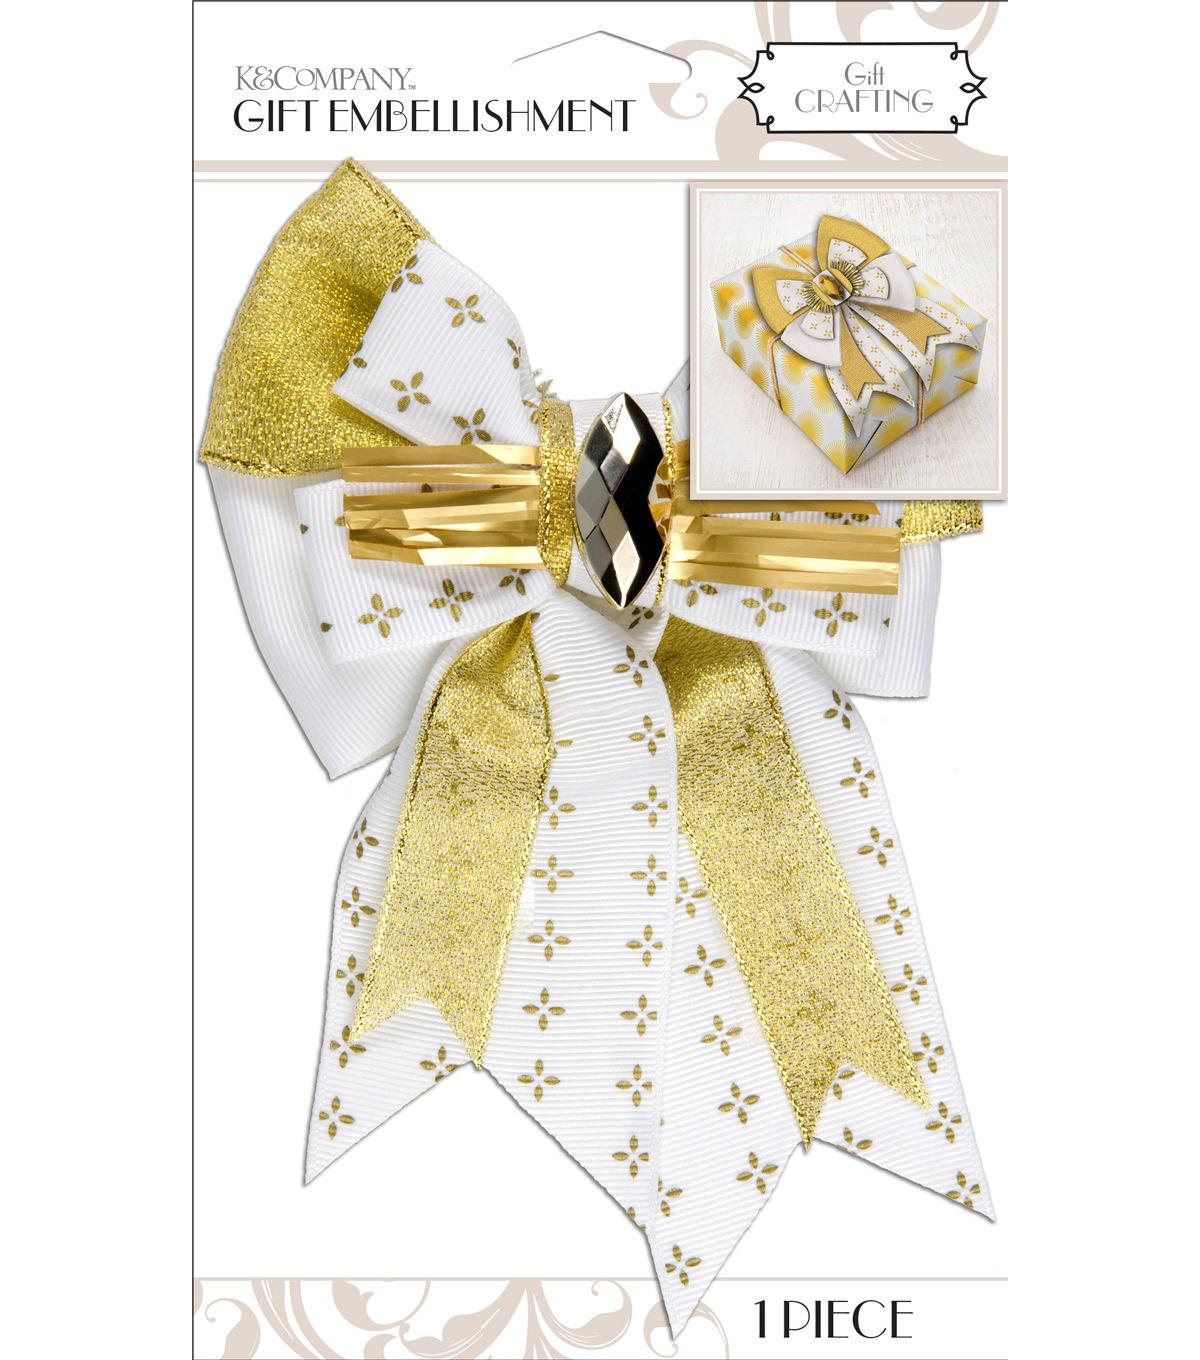 K&Company White And Gold Bow Gift Embellishment